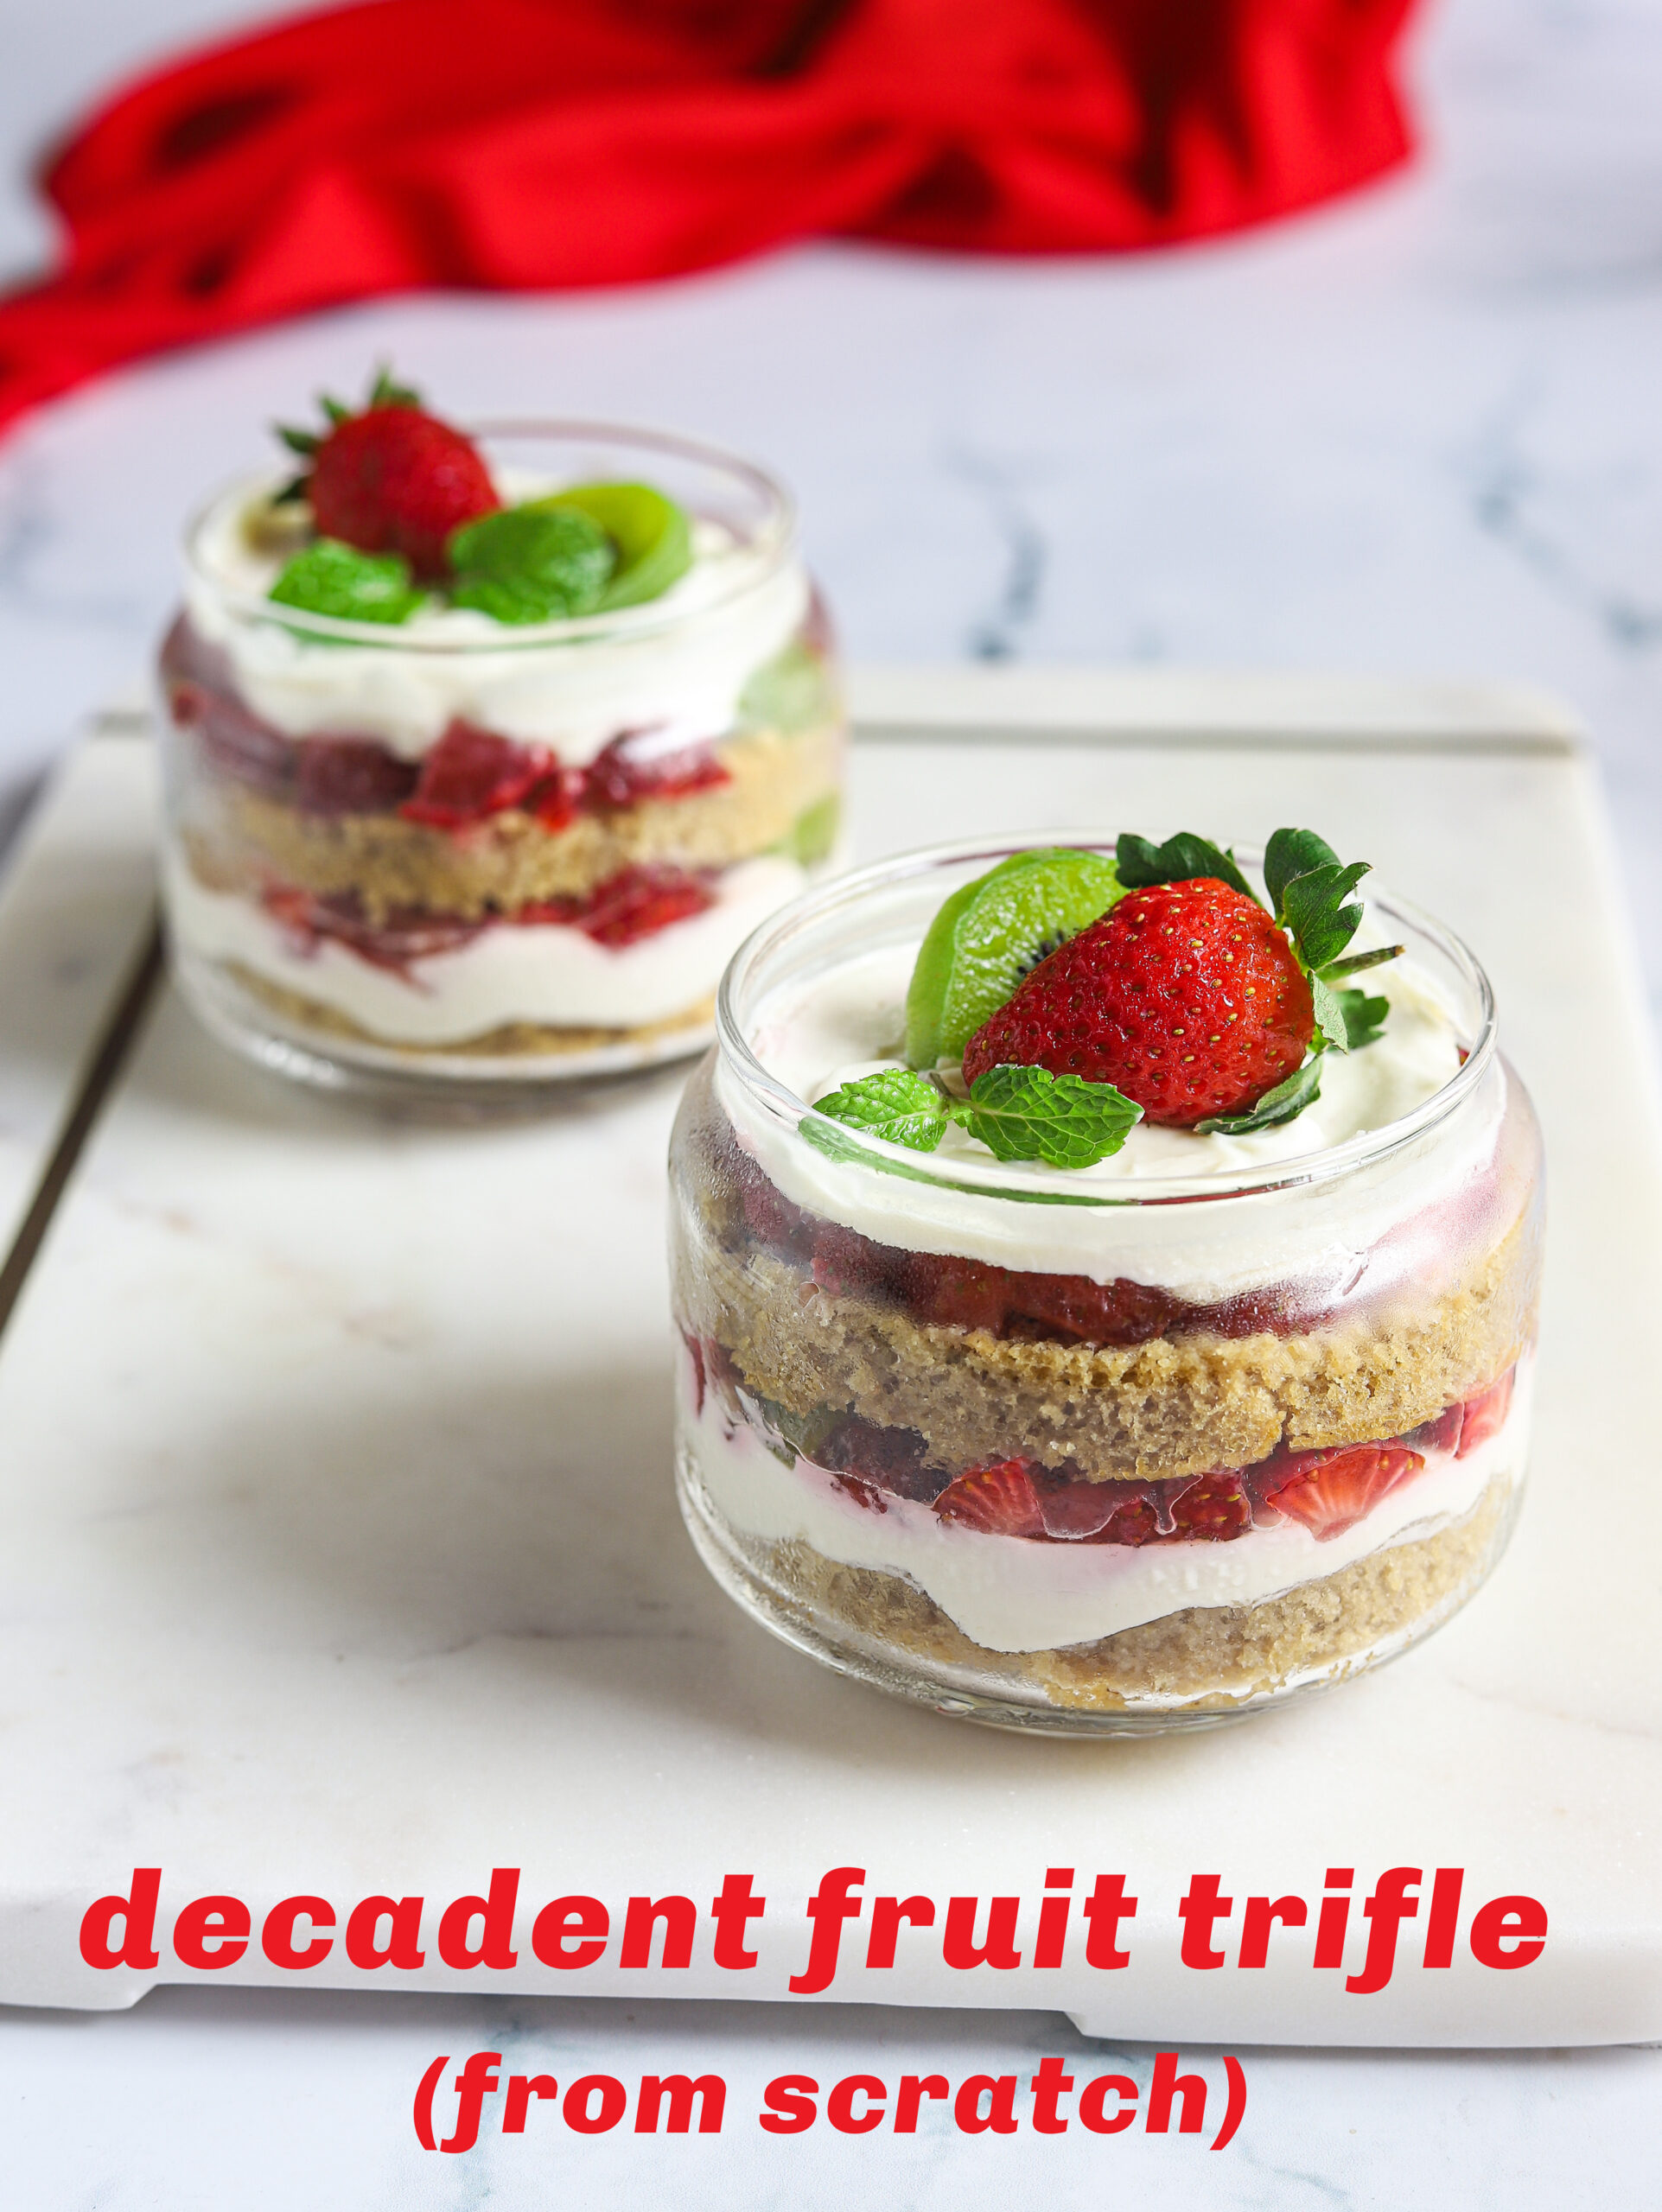 decadent fruit trifle